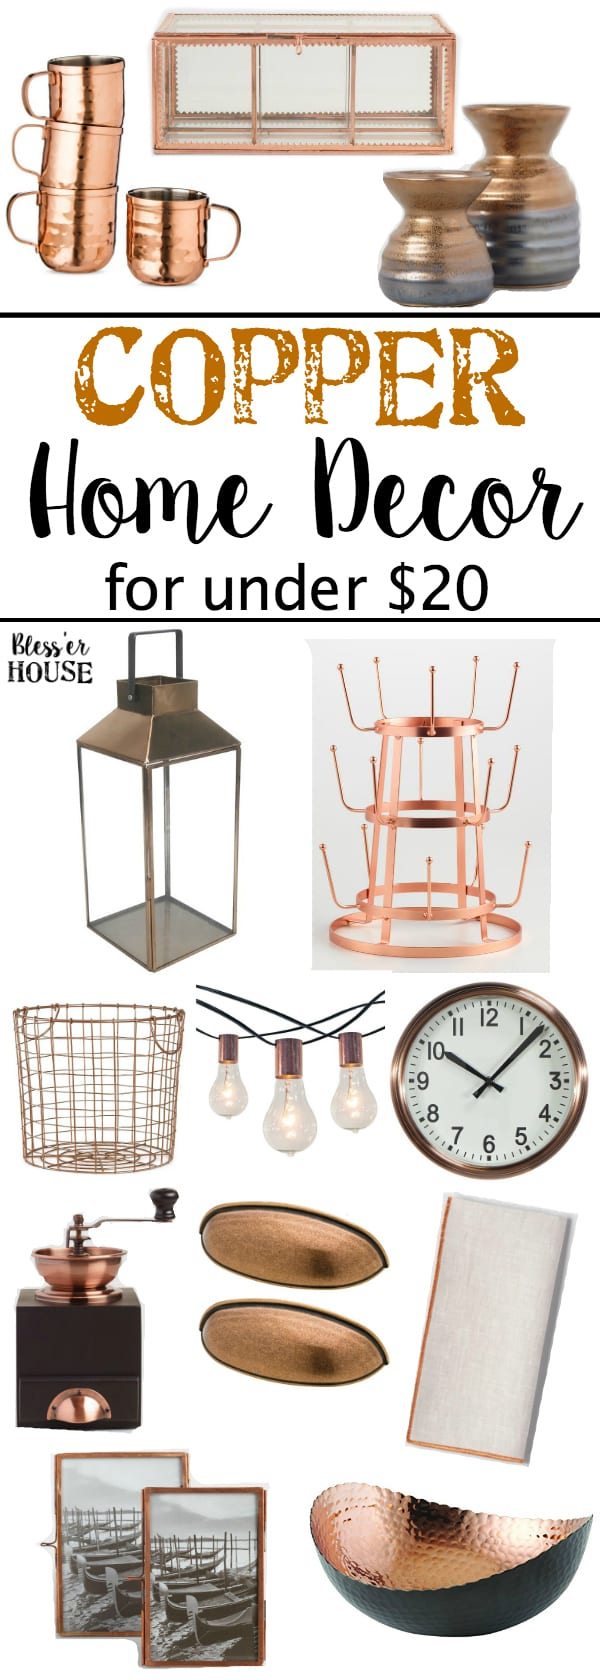 Copper Home Decor for Under $20 | blesserhouse.com - The ultimate list of copper home decor items for a small budget for fall or any time of year. #copperdecor #falldecor #shoppingguide